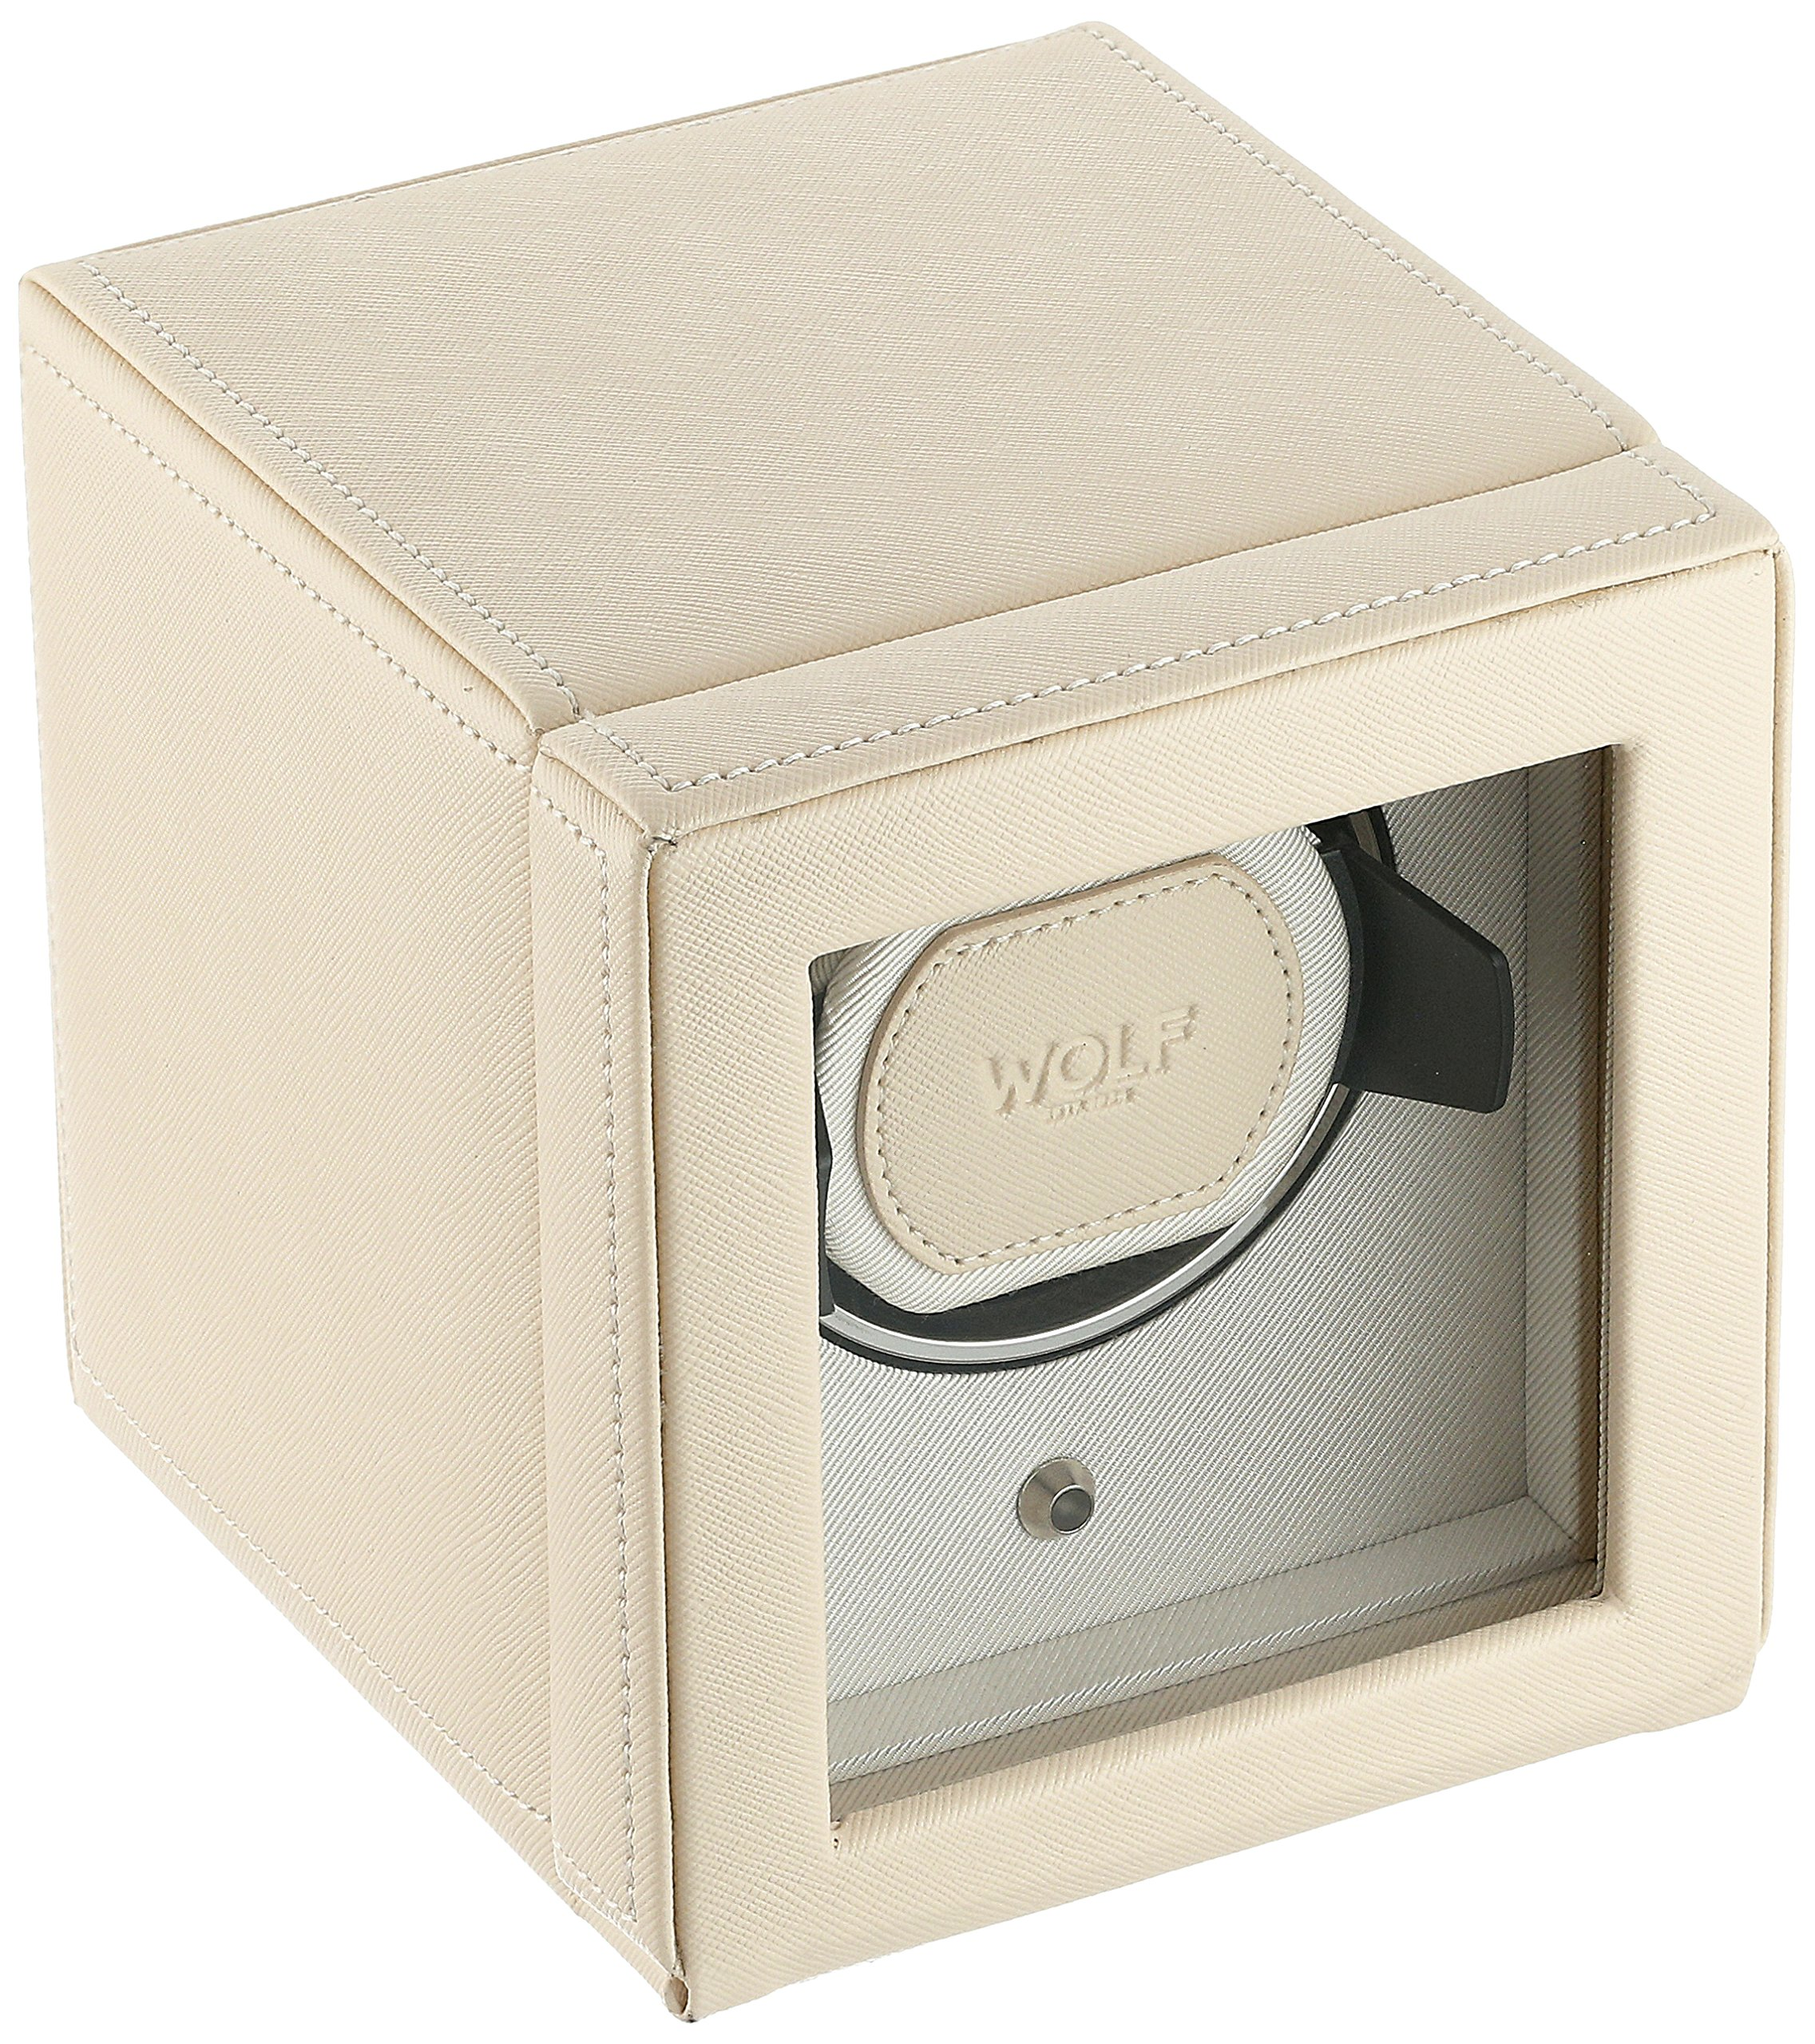 WOLF 461153 Cub Single Watch Winder with Cover, Cream